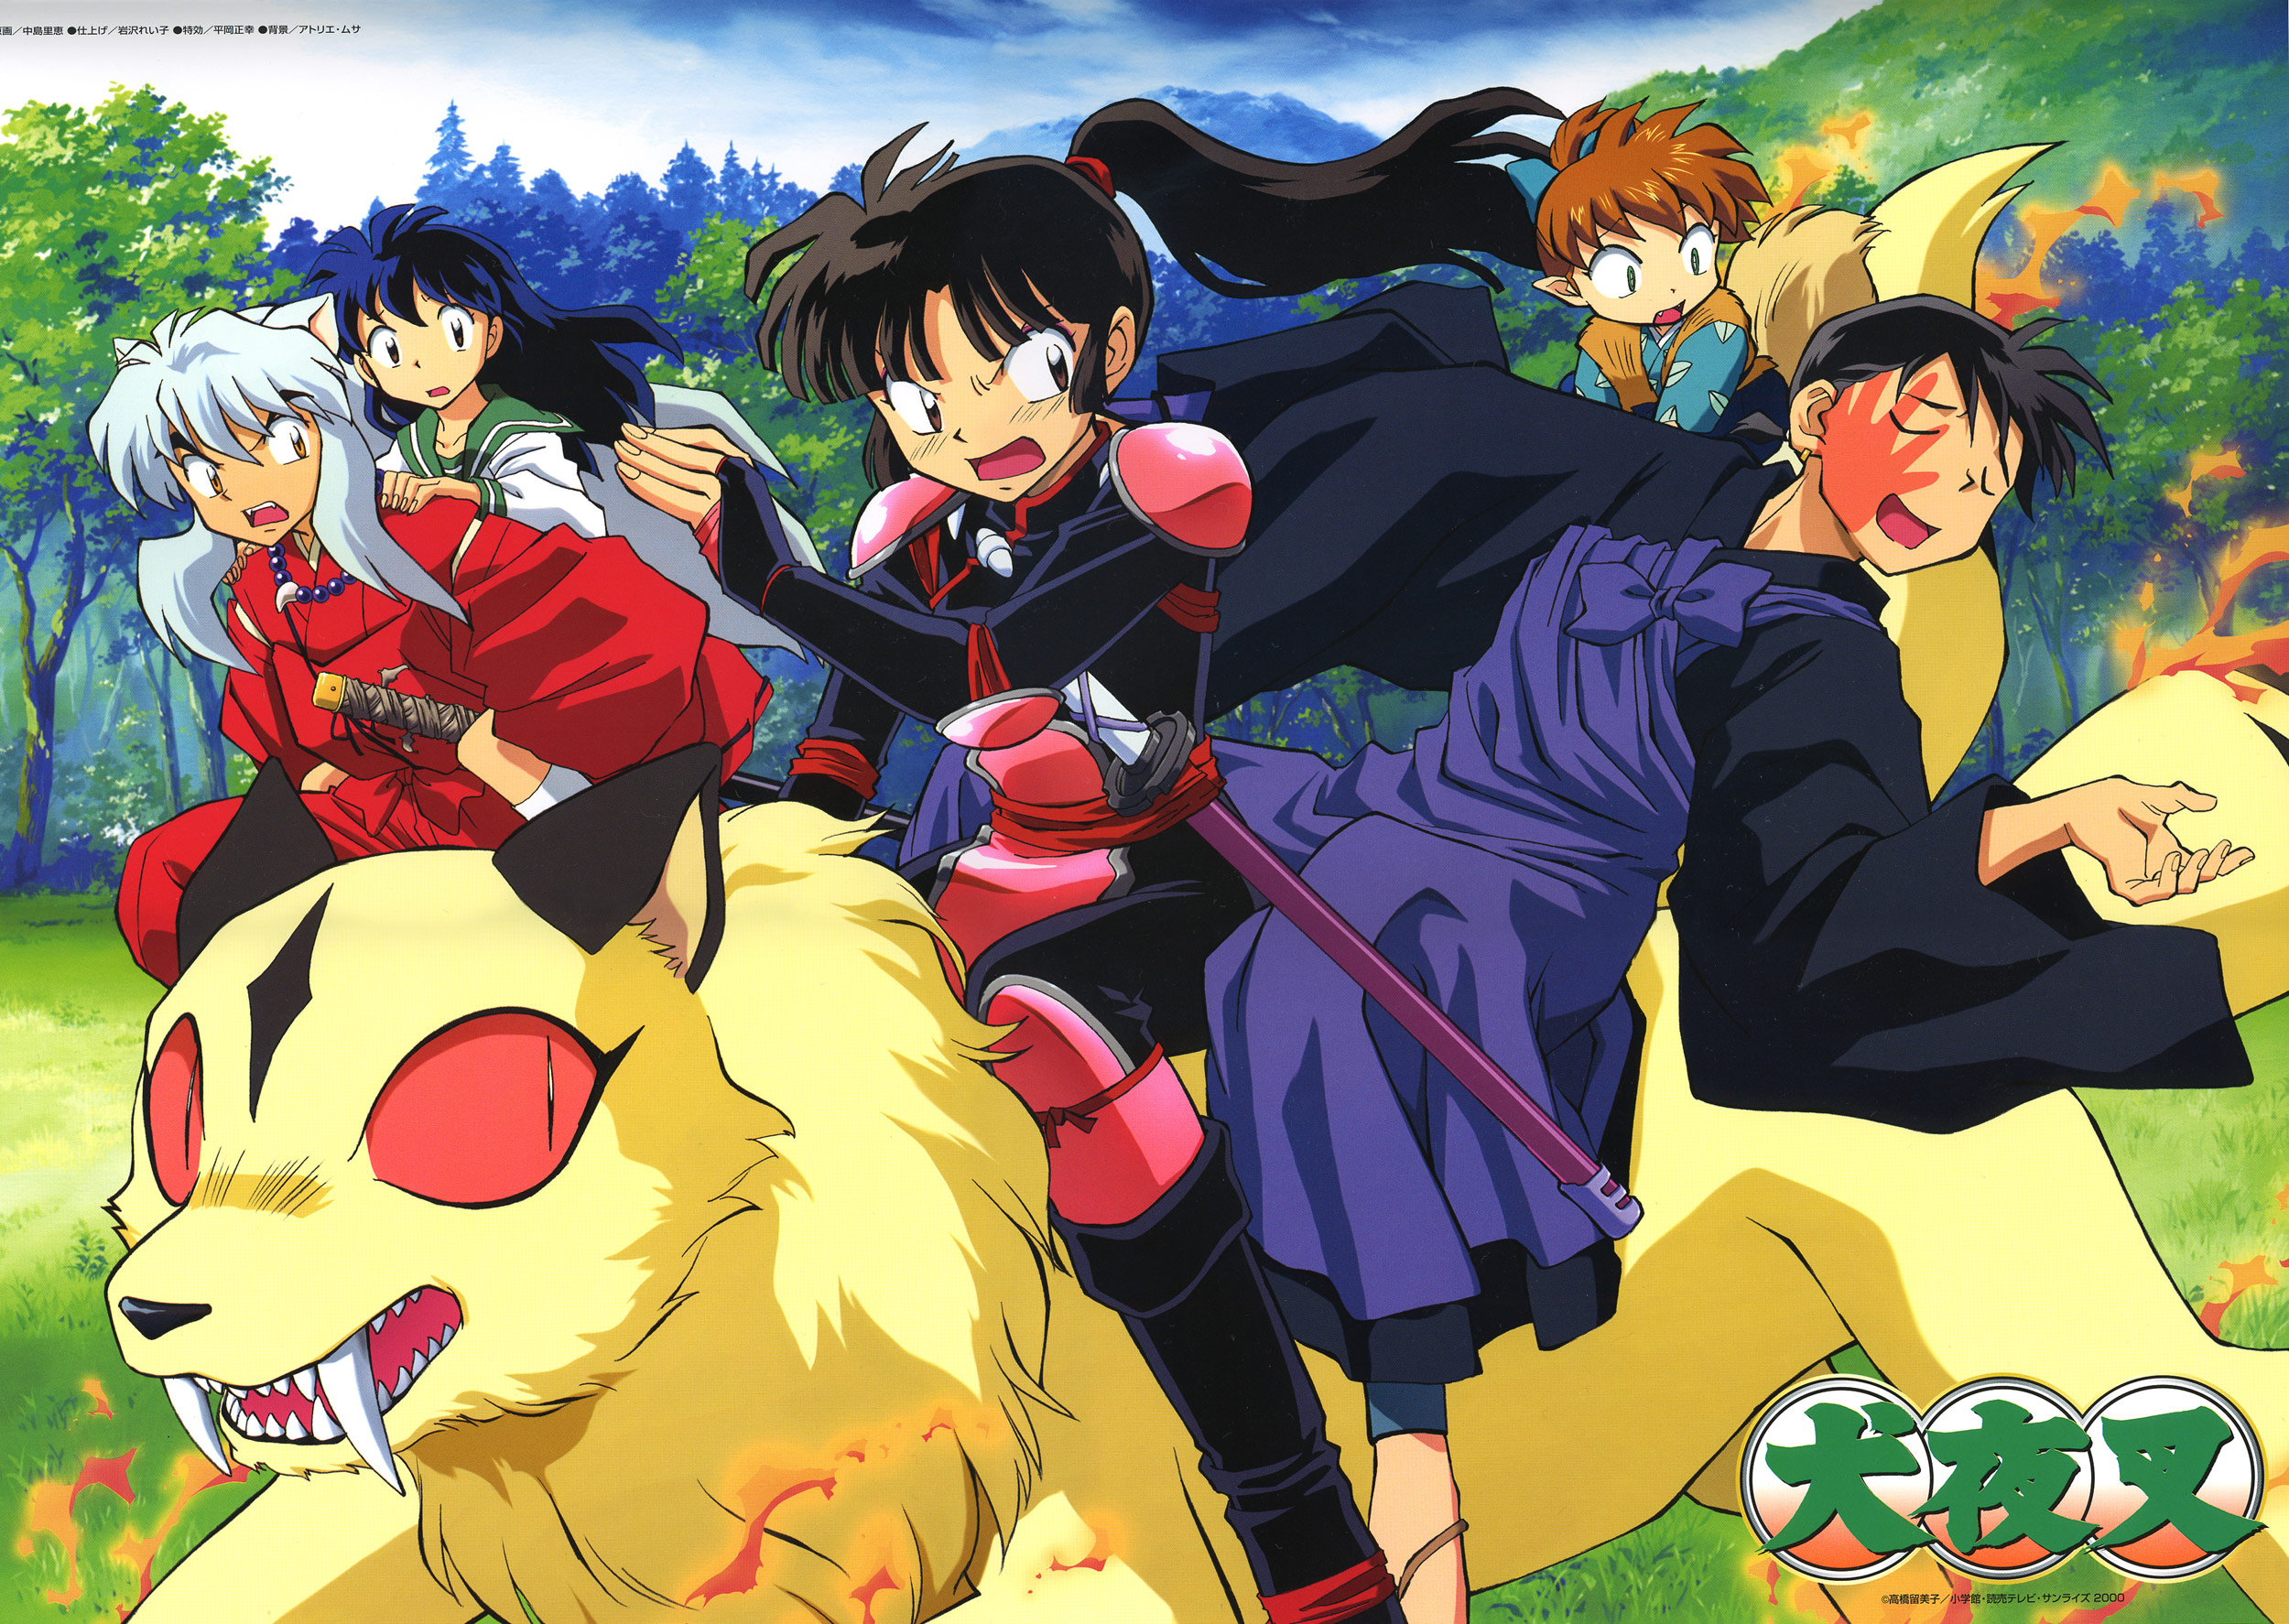 Inuyasha Filme 2 Simple only anime!!!: october 2013